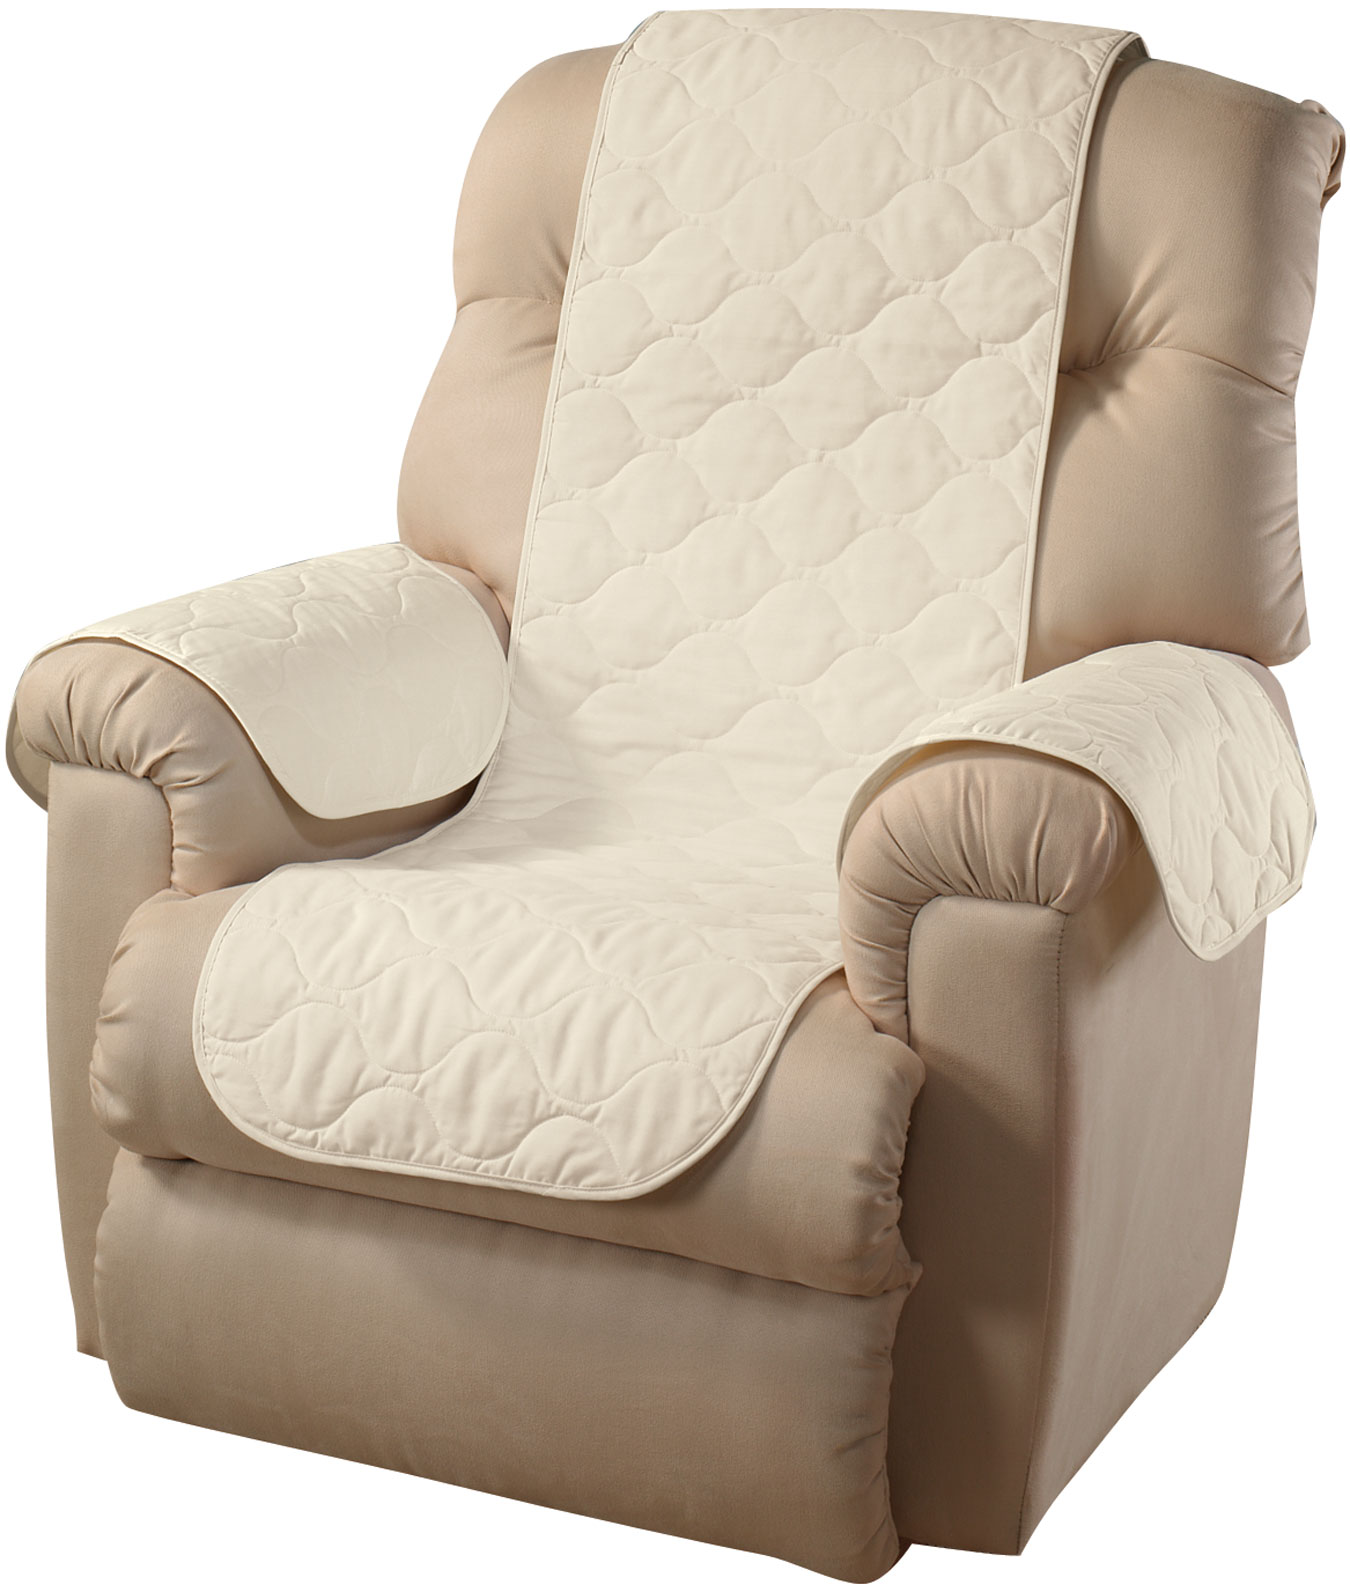 Quilted Chair Cover Walmart